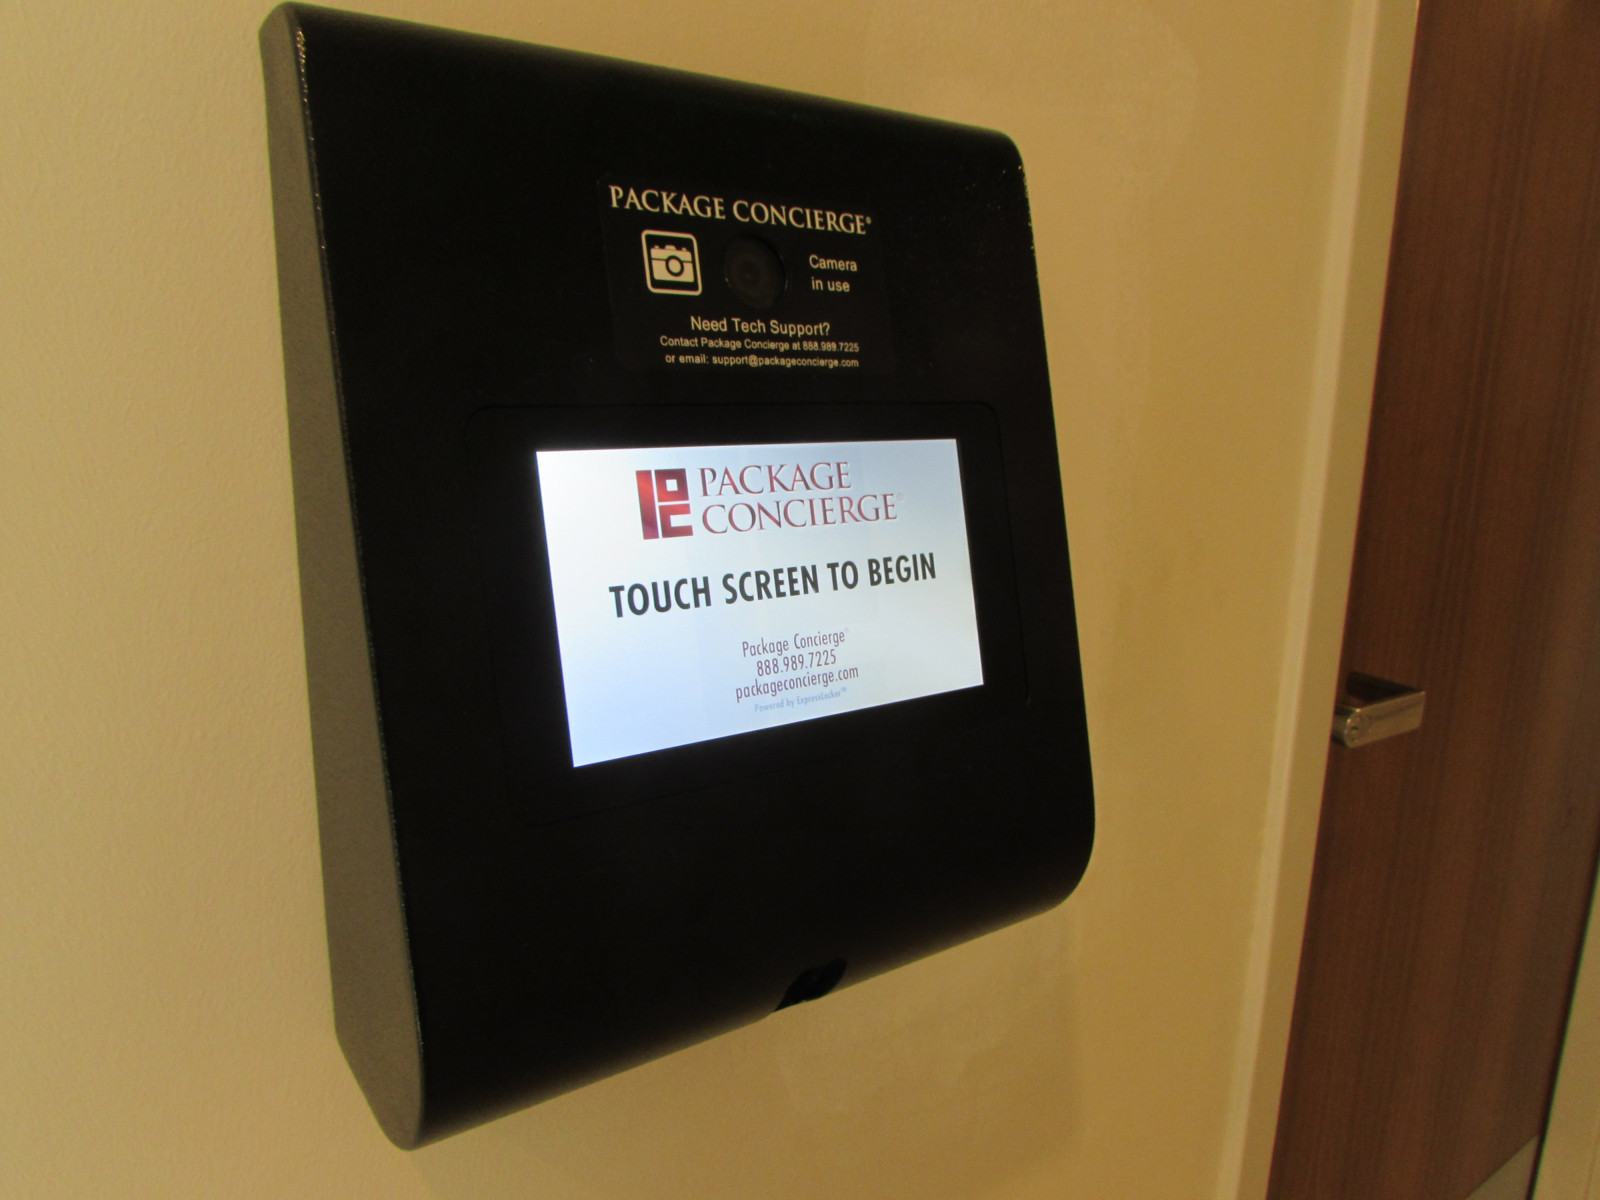 Wall Mounted Access Control Panel for Package Room